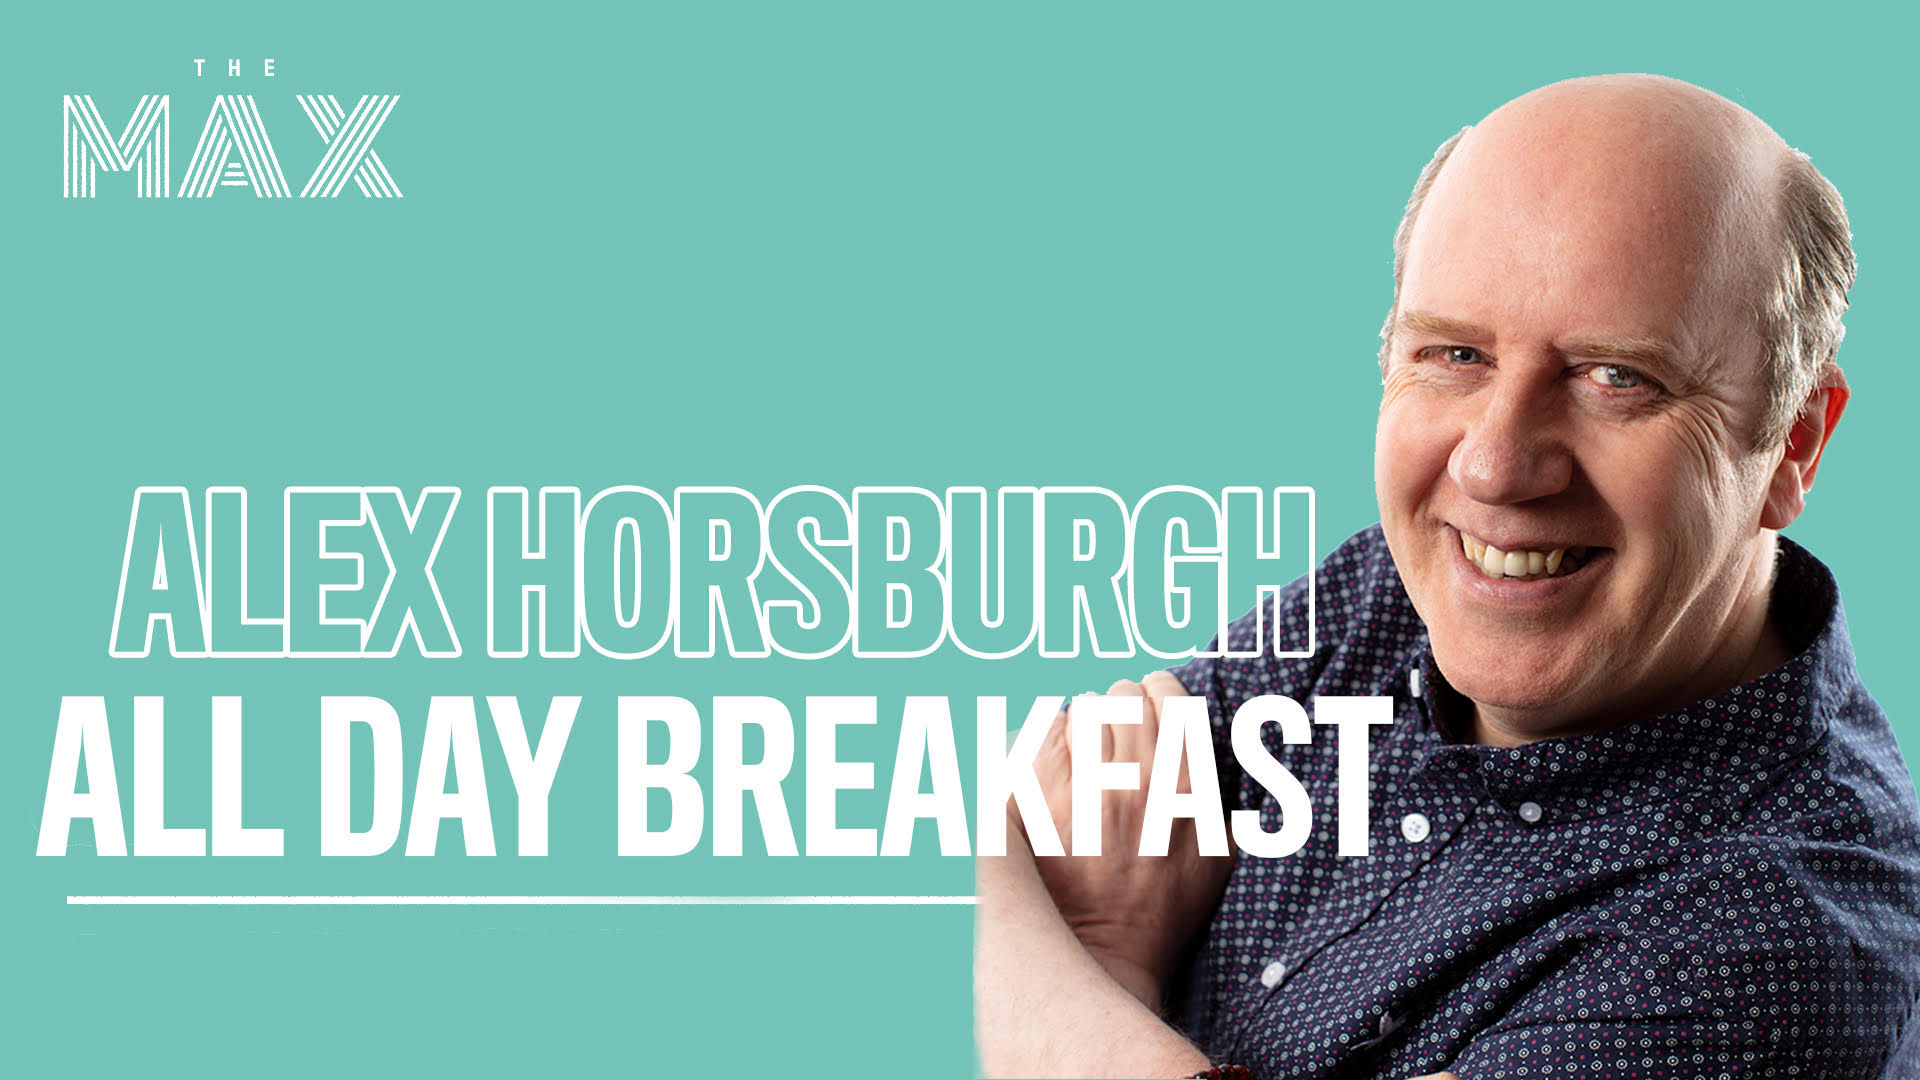 The All Day Breakfast - 5th of July 2021